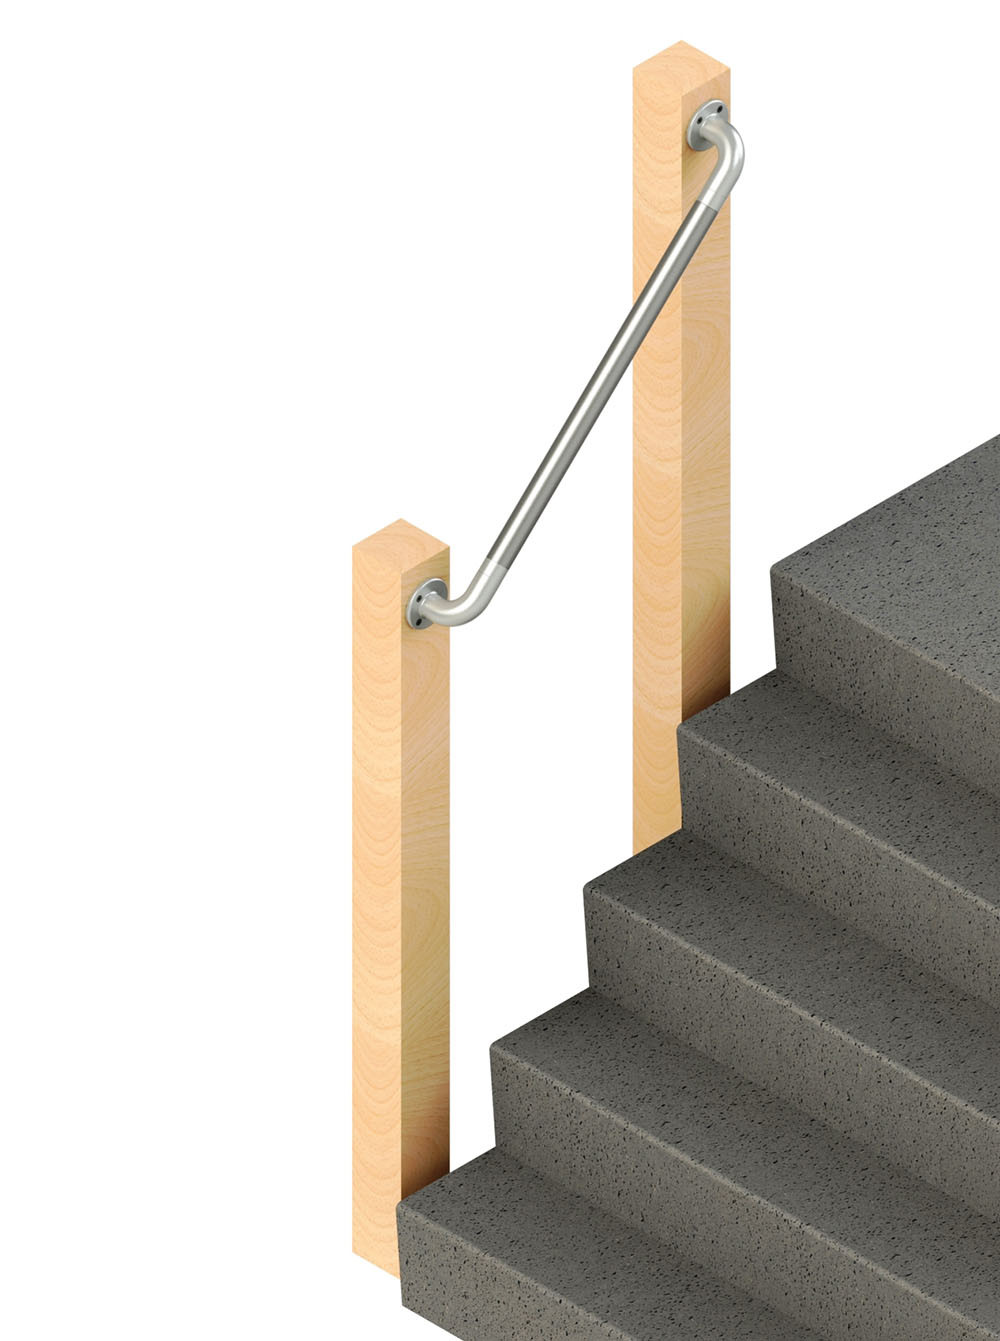 SR-565 Wall Mounted Handrail, render